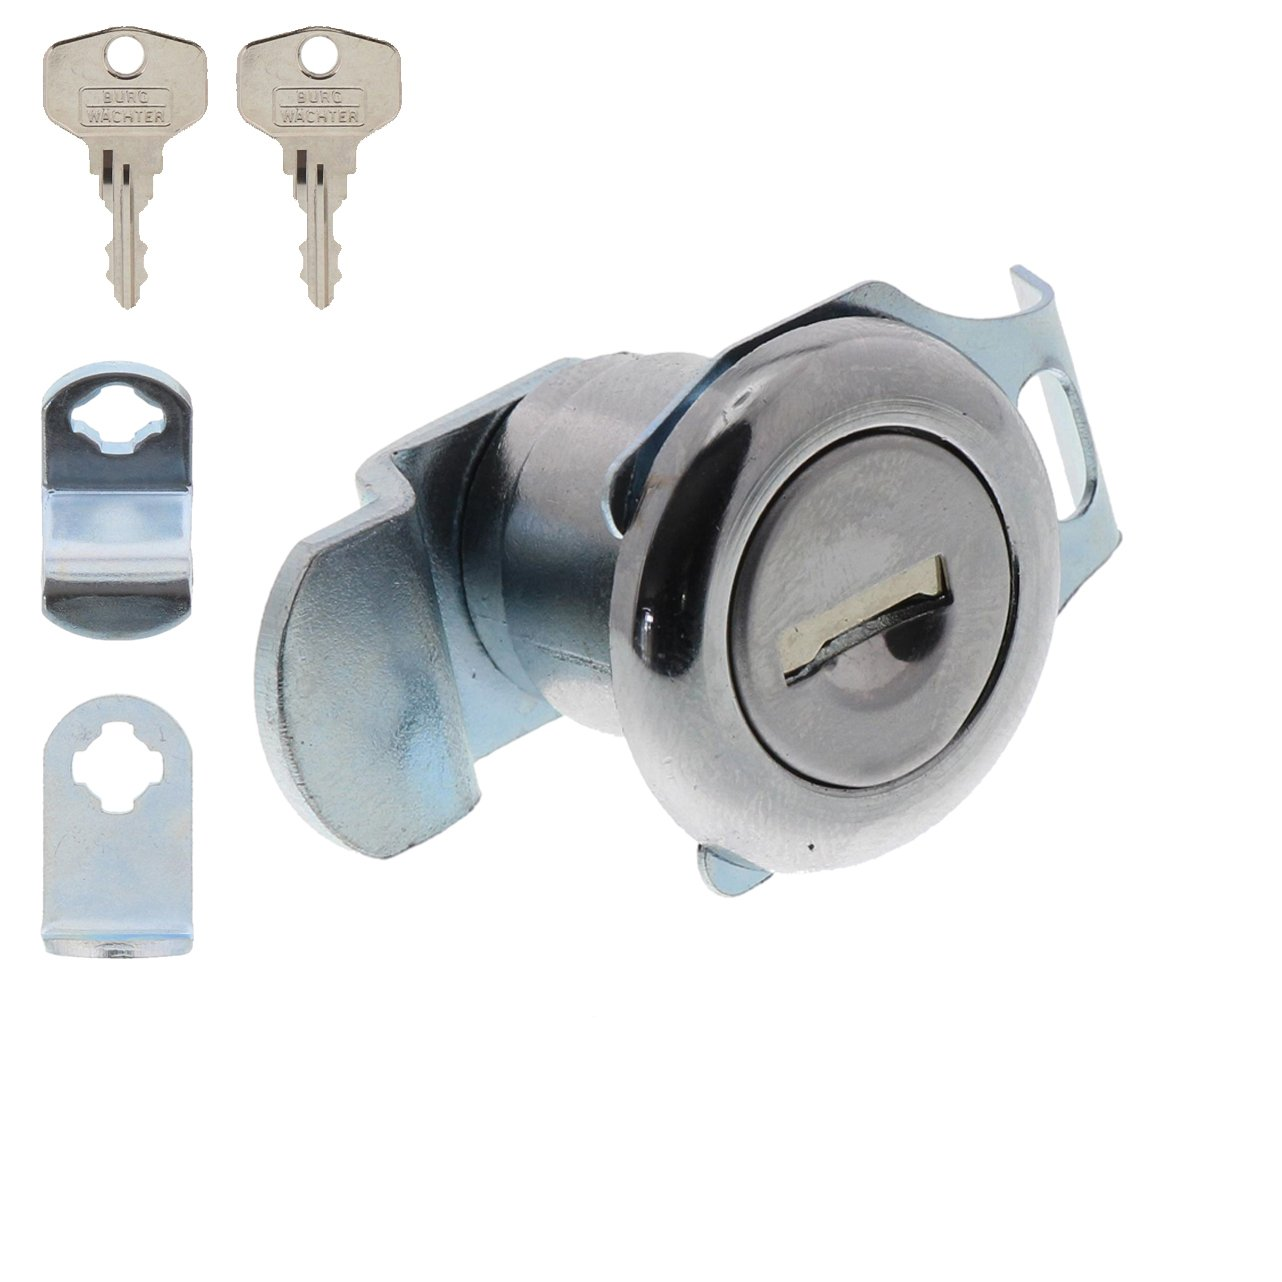 Chrome-Plated for Material Thickness of 1 to 2 mm ZBK 71 SB 1 Supplied BURG-W/ÄCHTER Replacement Cylinder for Cam Lock for Letter Box